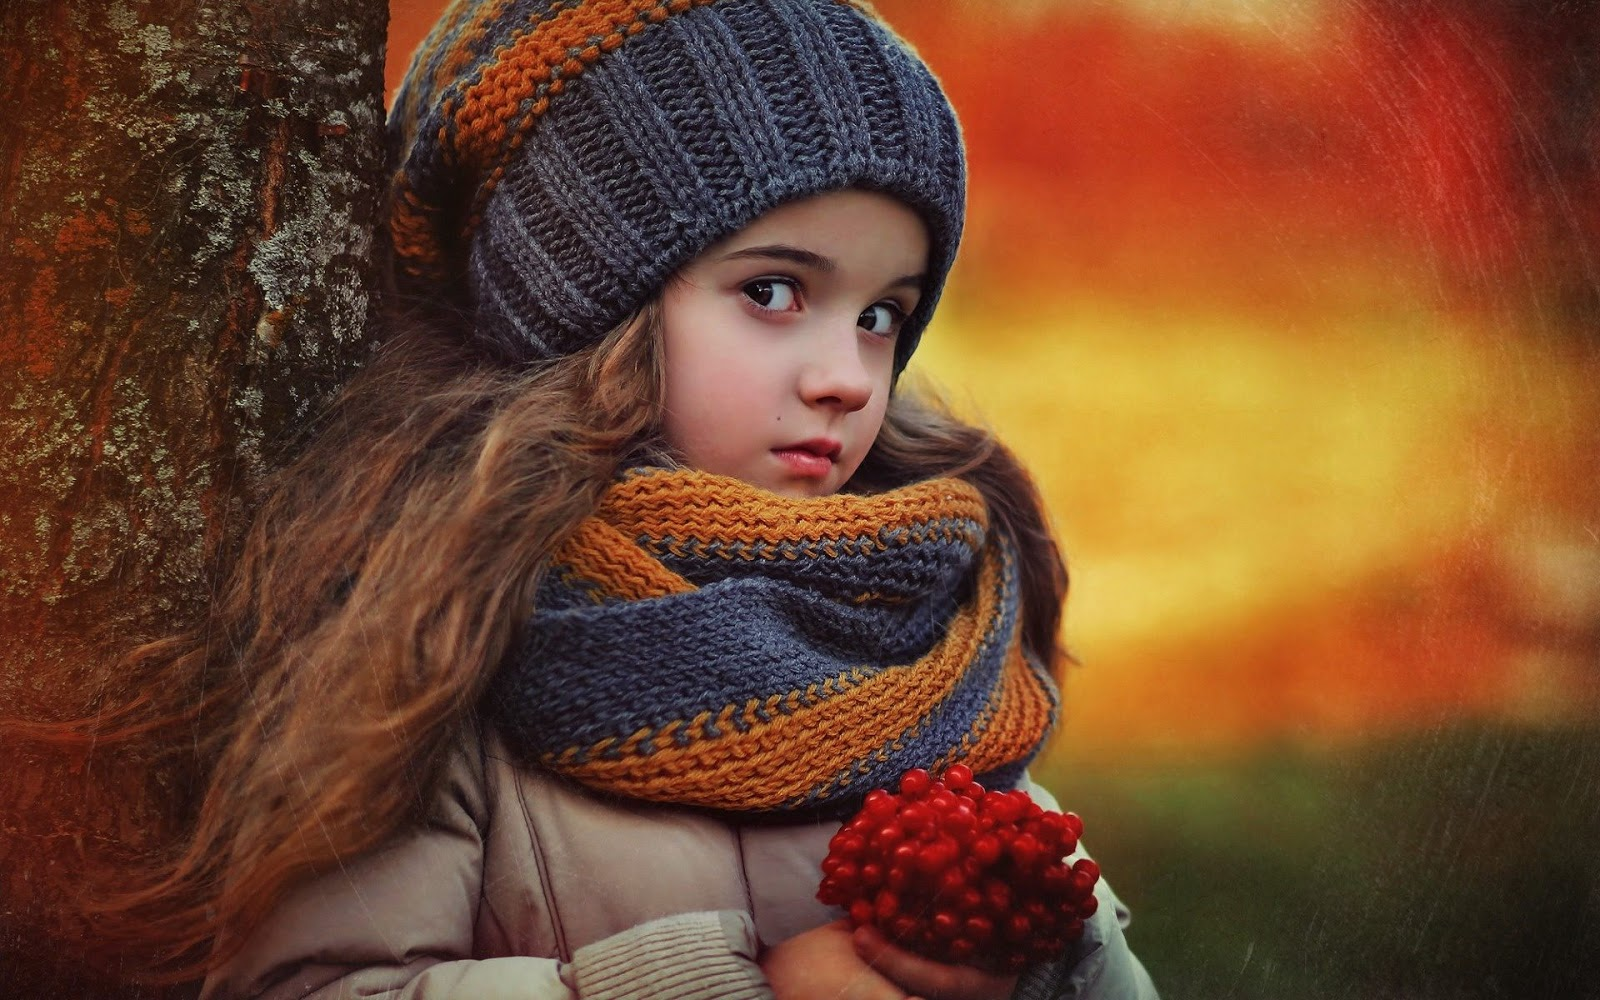 Red Indian Girl Wallpaper Red Berries Cute Girl Dell Wallpapers High Definition